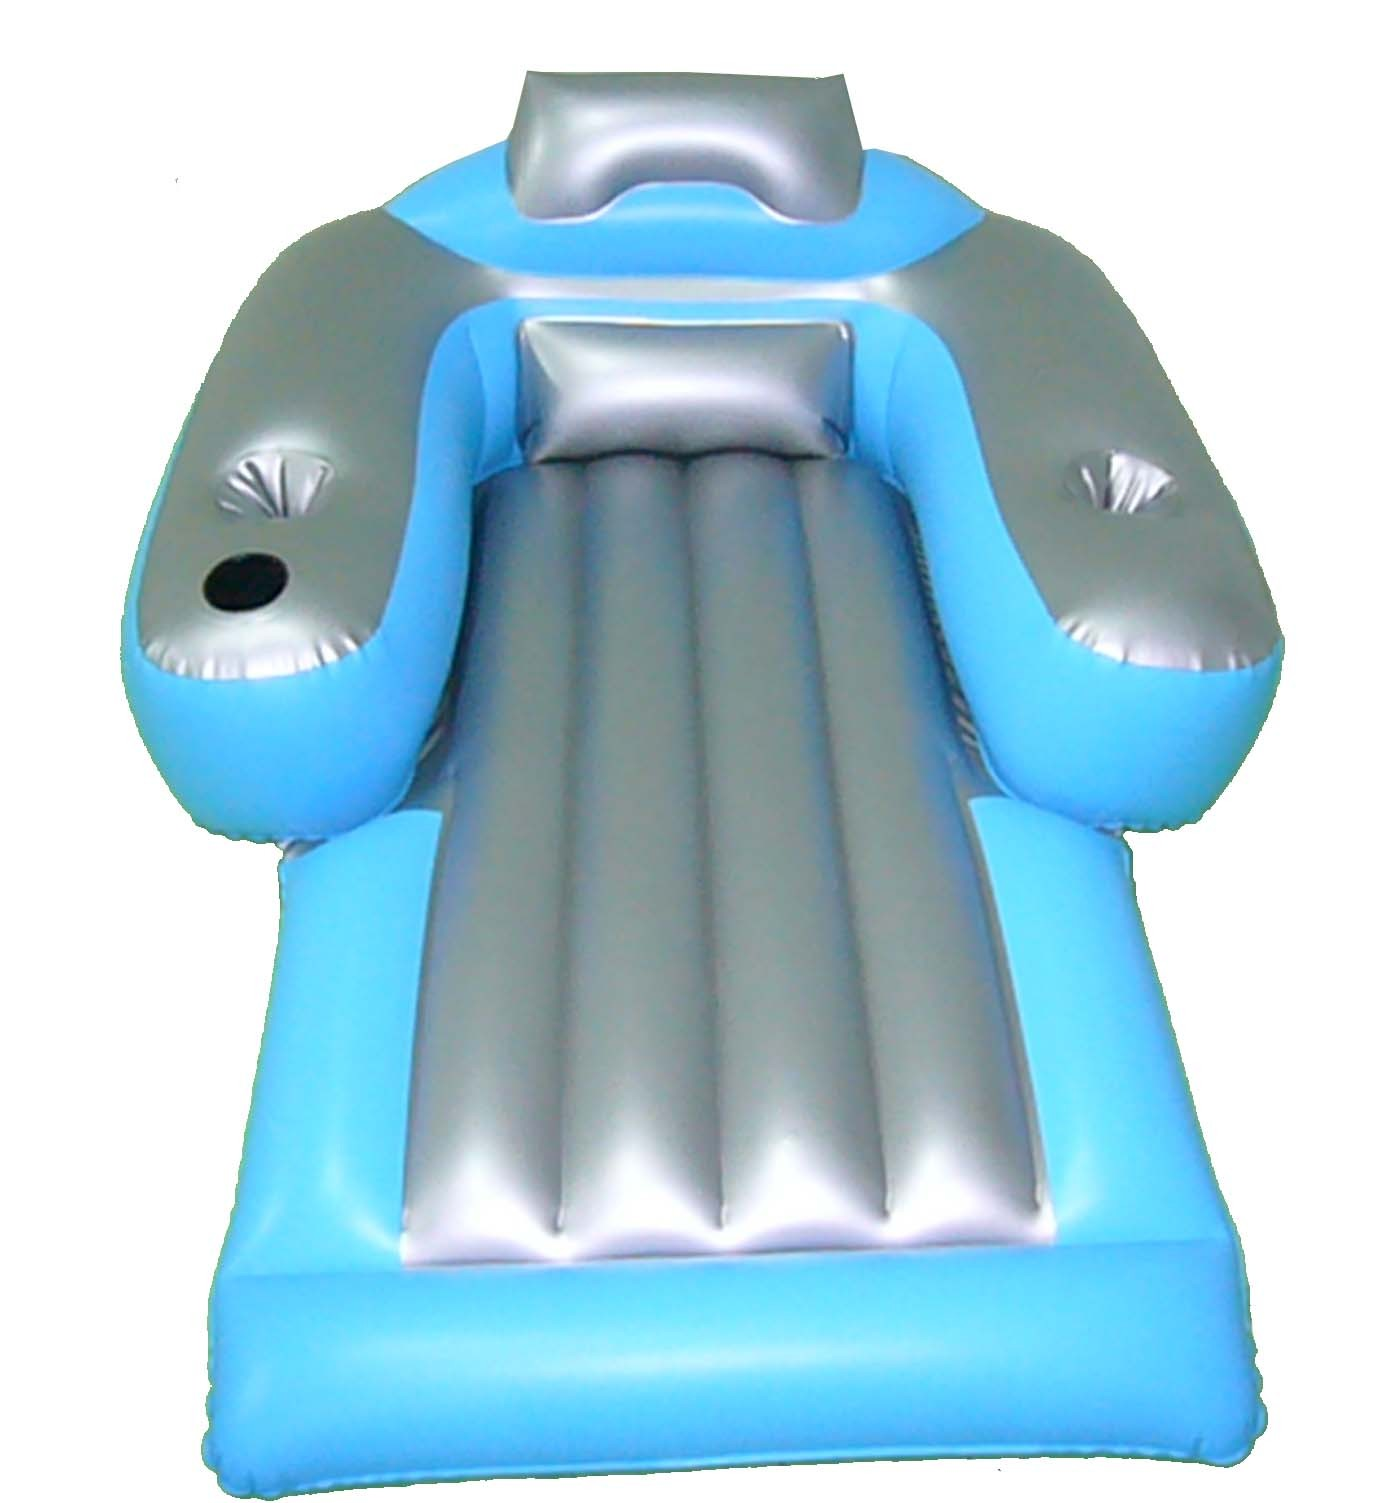 inflatable chairs for adults high chair argos 3 in 1 air mattress and sofa new inflatables